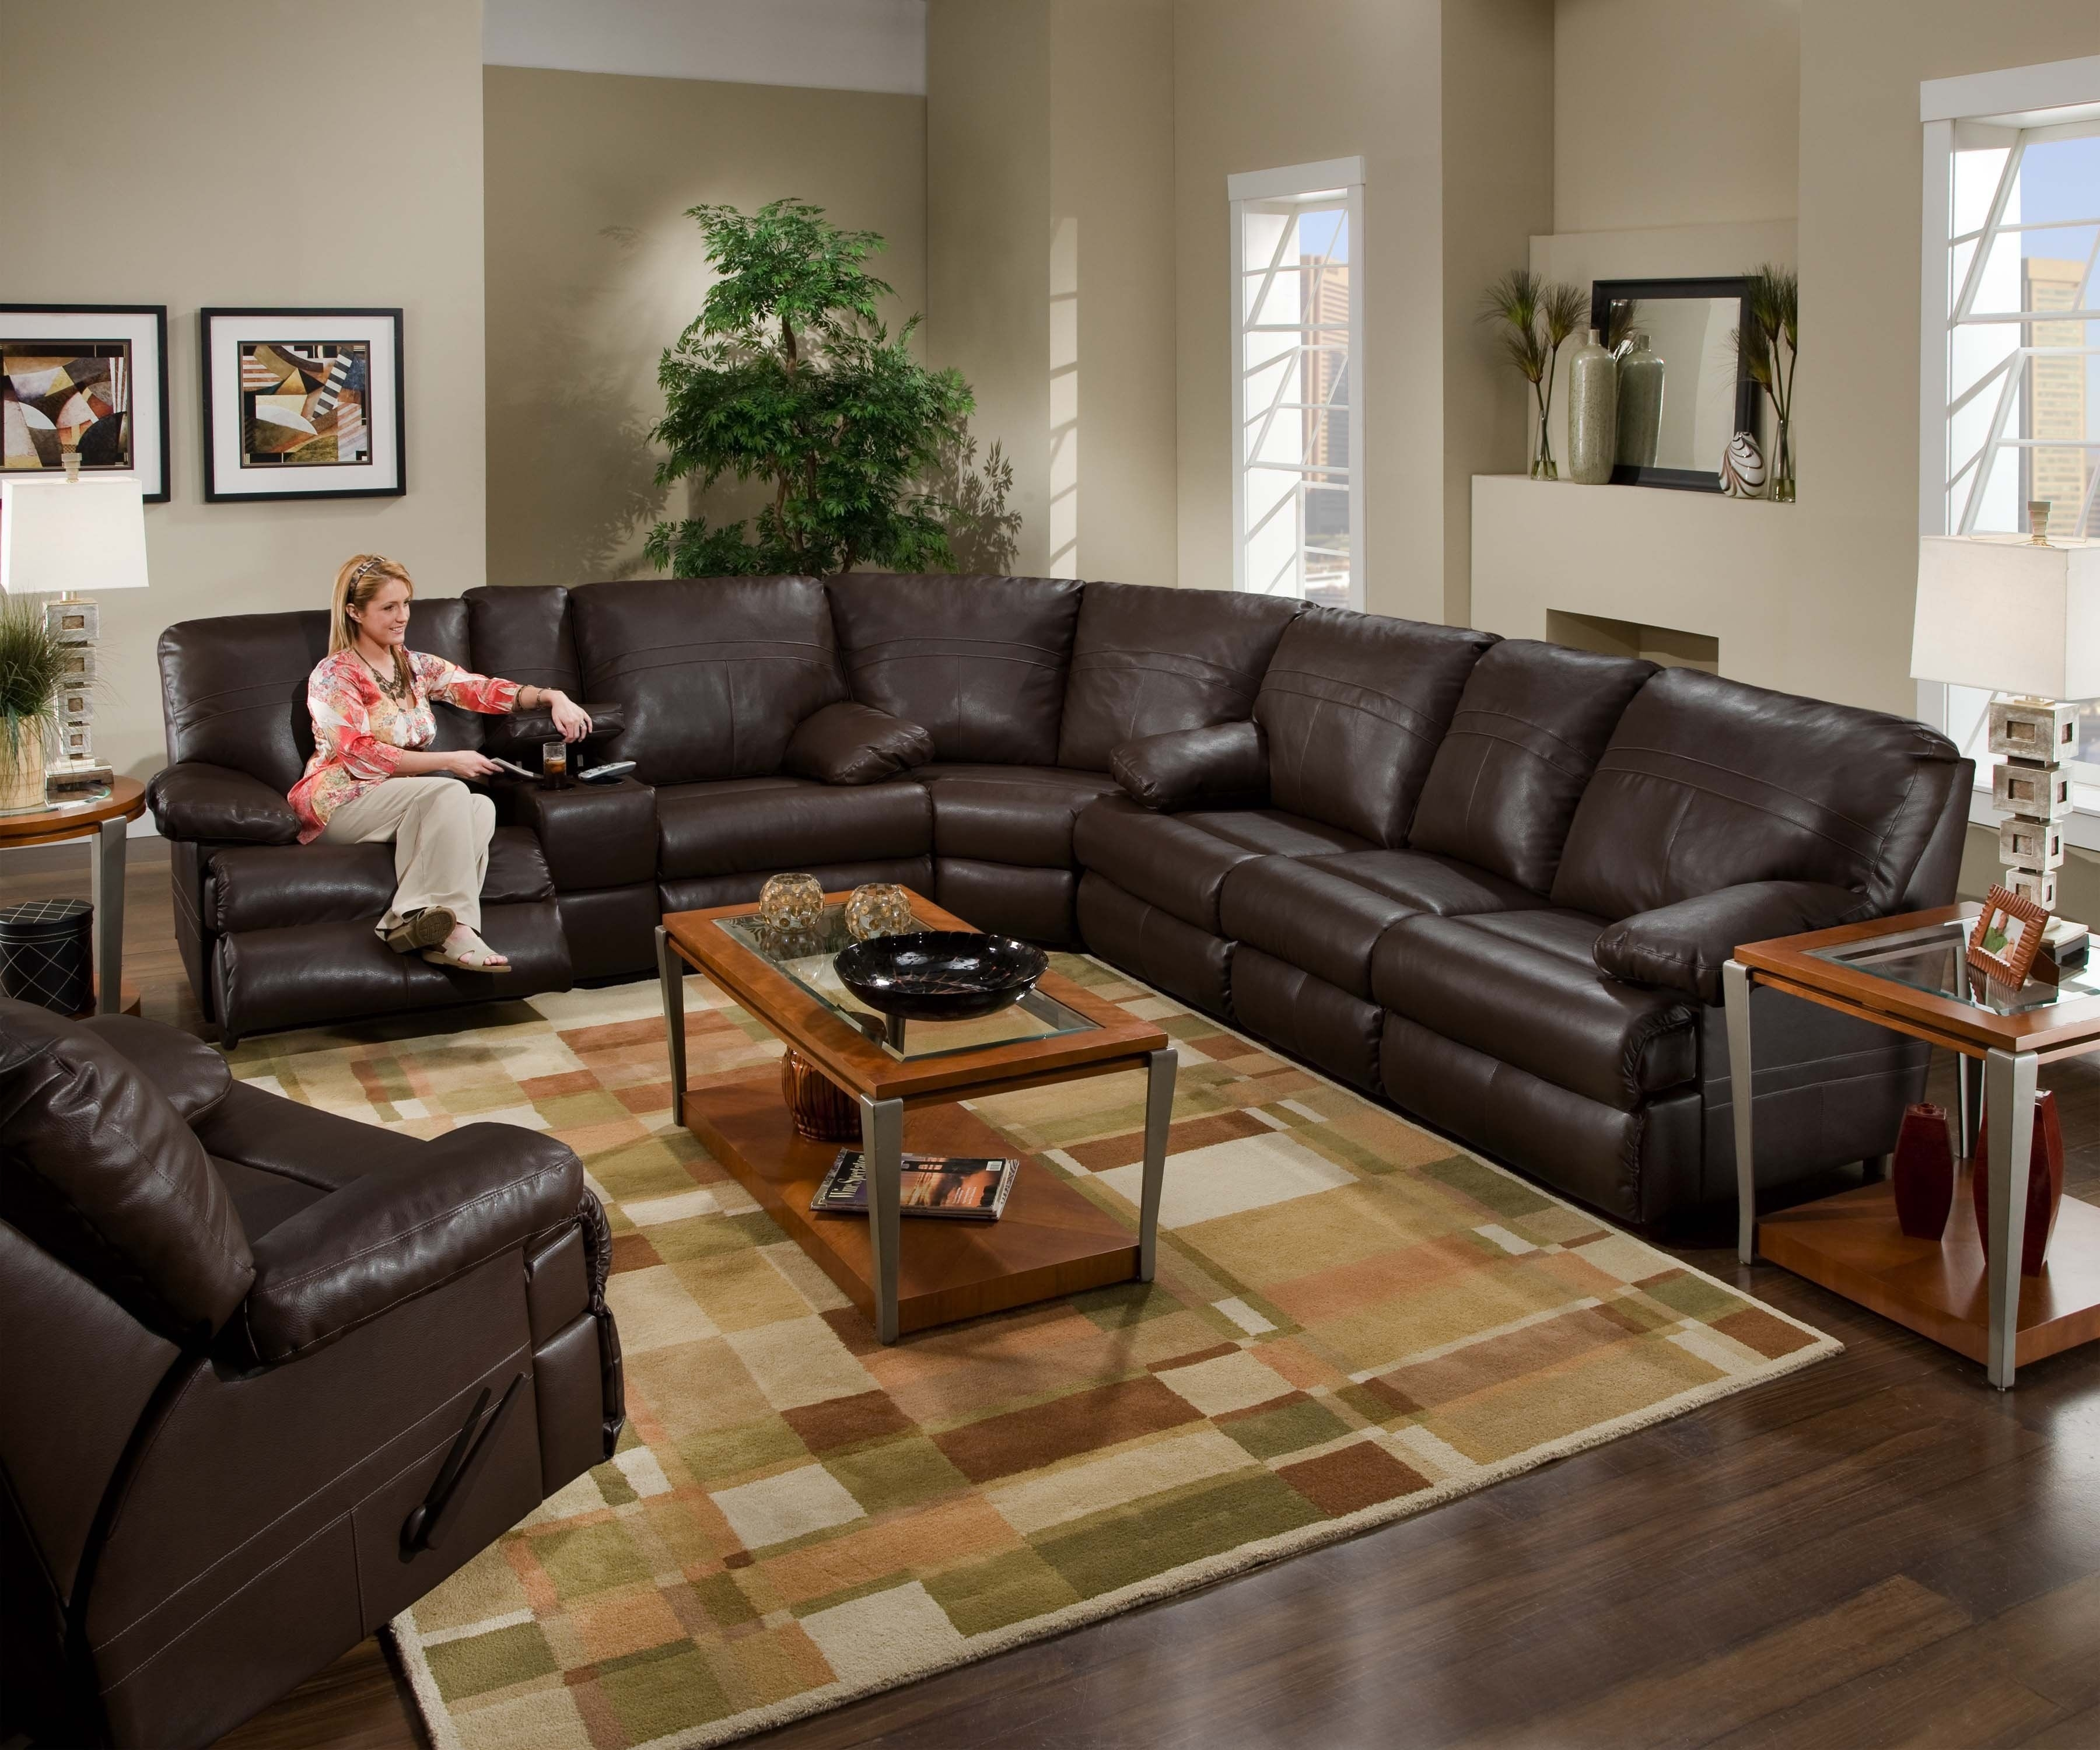 Sectional Leather Couch With Recliners. (Image 8 of 10)